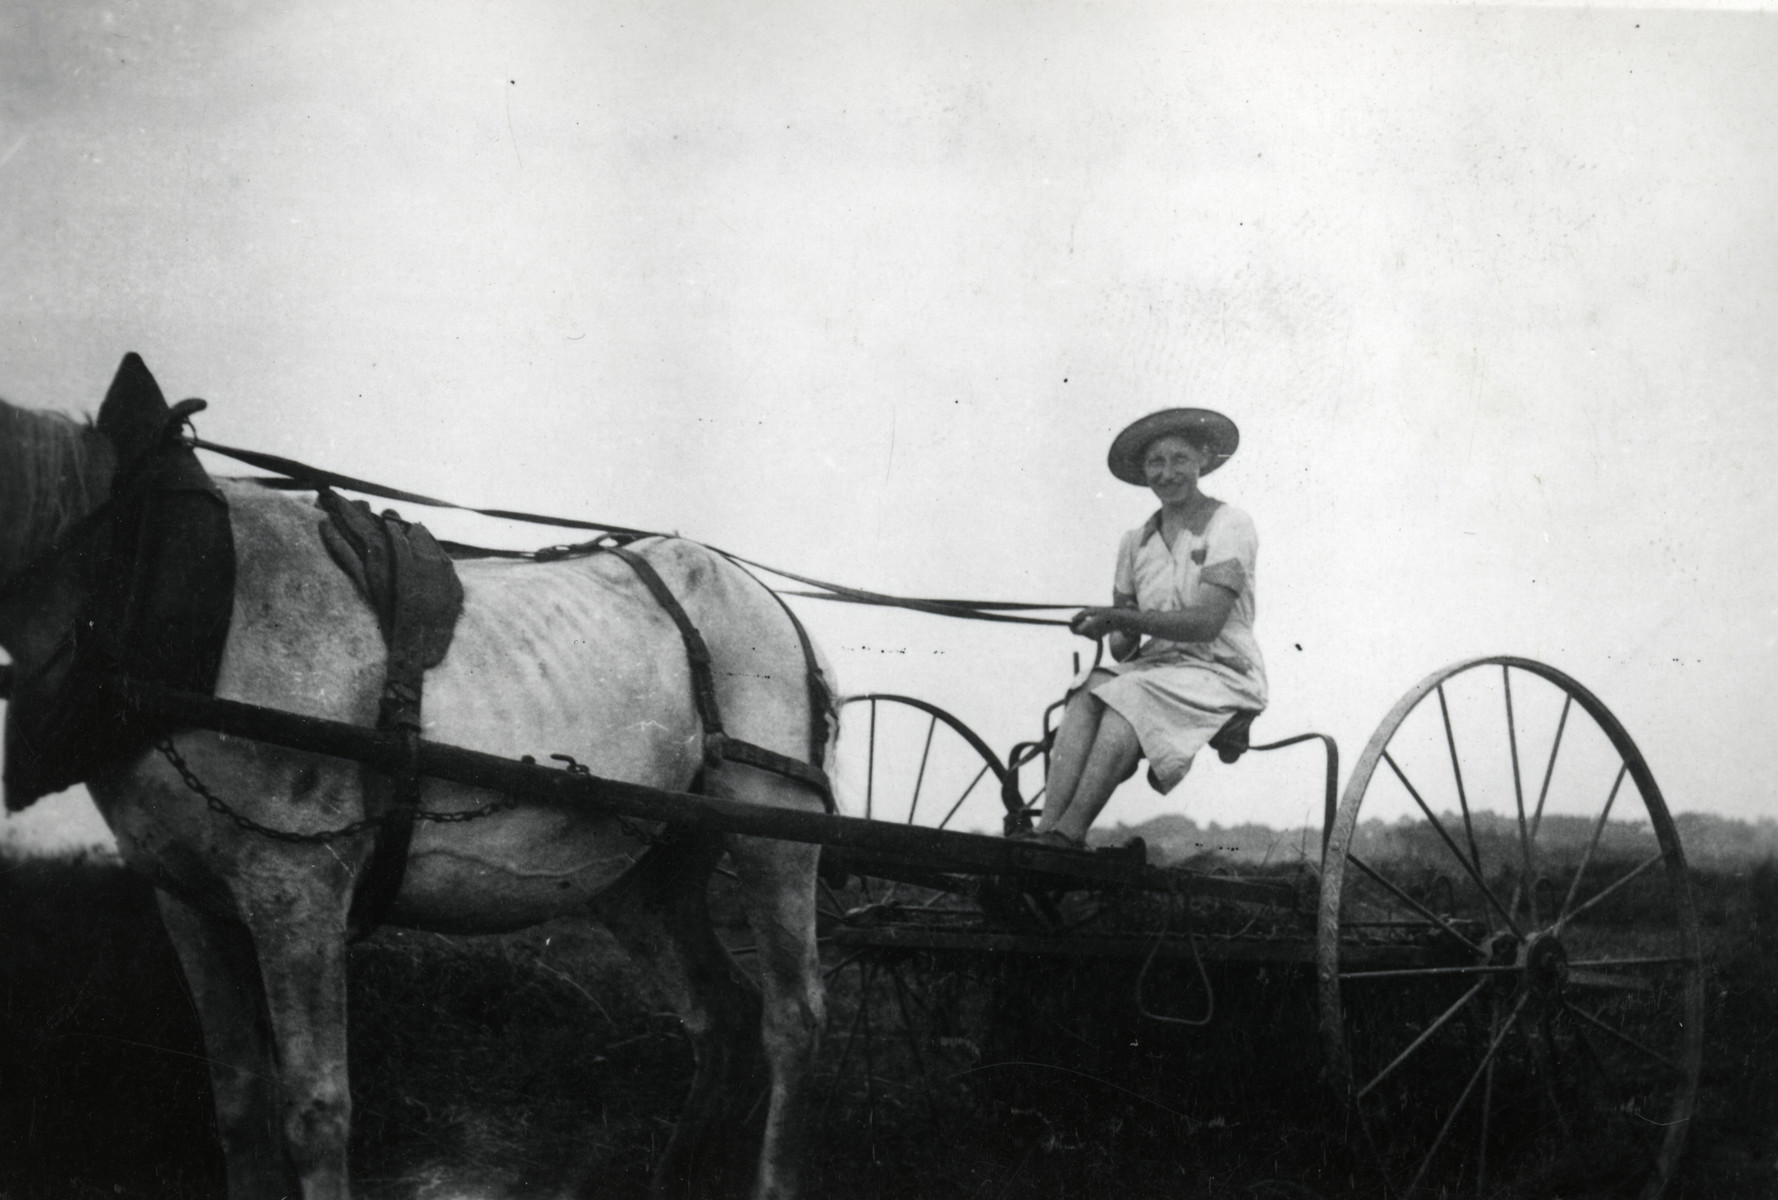 Rosa Moses, the donor's mother, is sitting in a horse-drawn carriage, holding the horse's reins. The farm is Mr. Combes', where Rosa's husband Alfred Kahn was working.